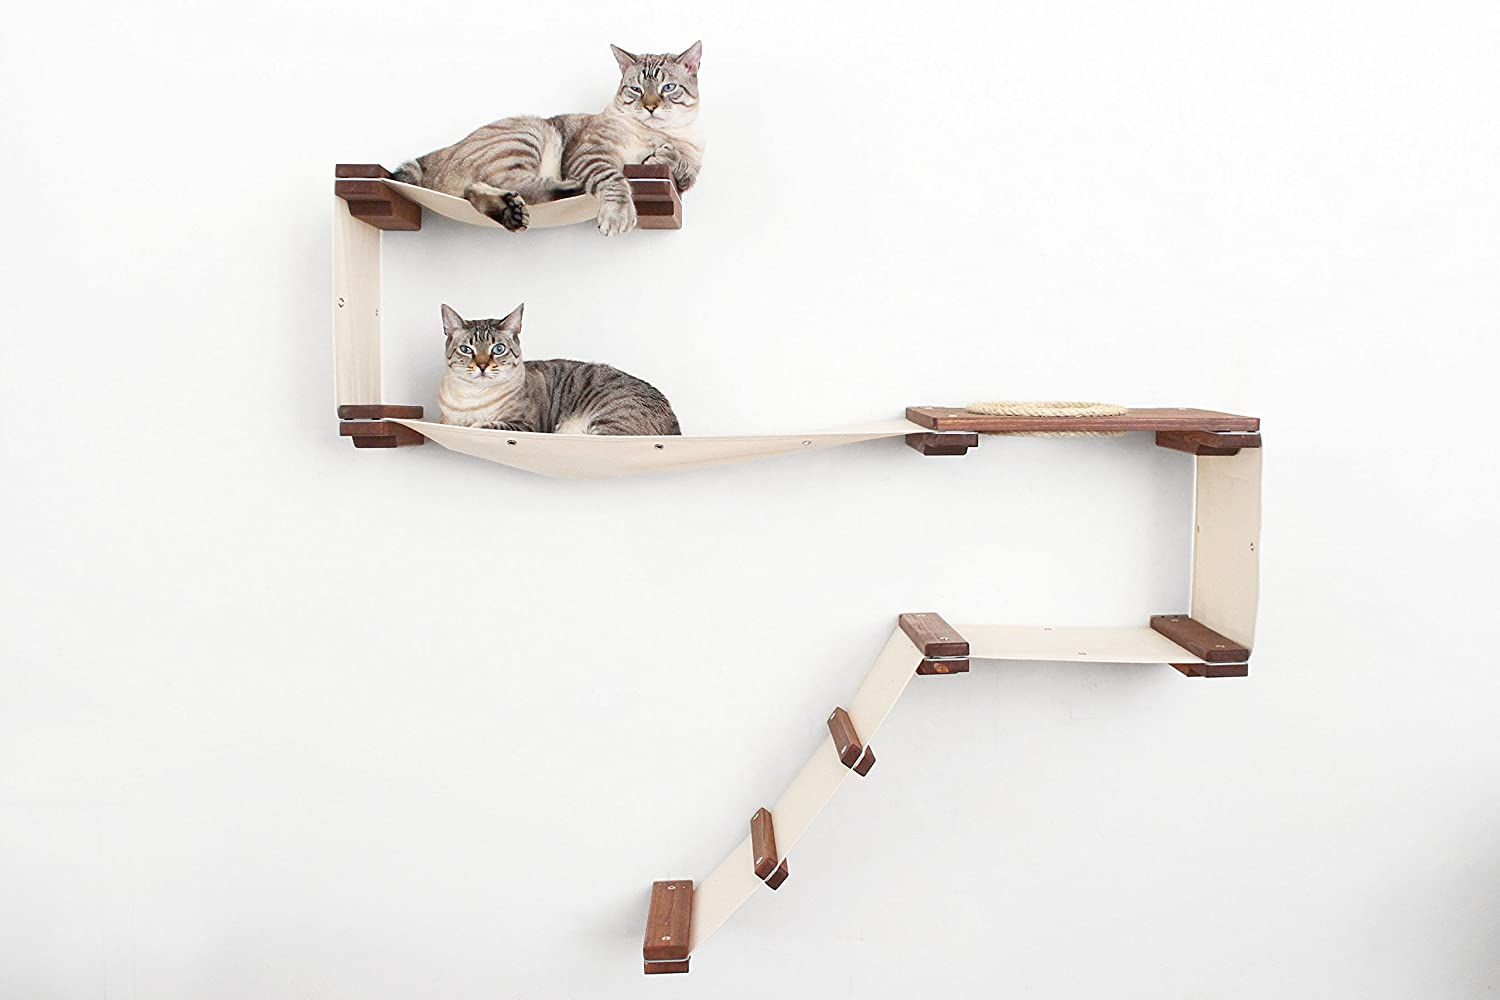 CatastrophiCreations Cat Mod Play Handcrafted Wallmounted Activity Cat Tree Shelves  Onyx Natural